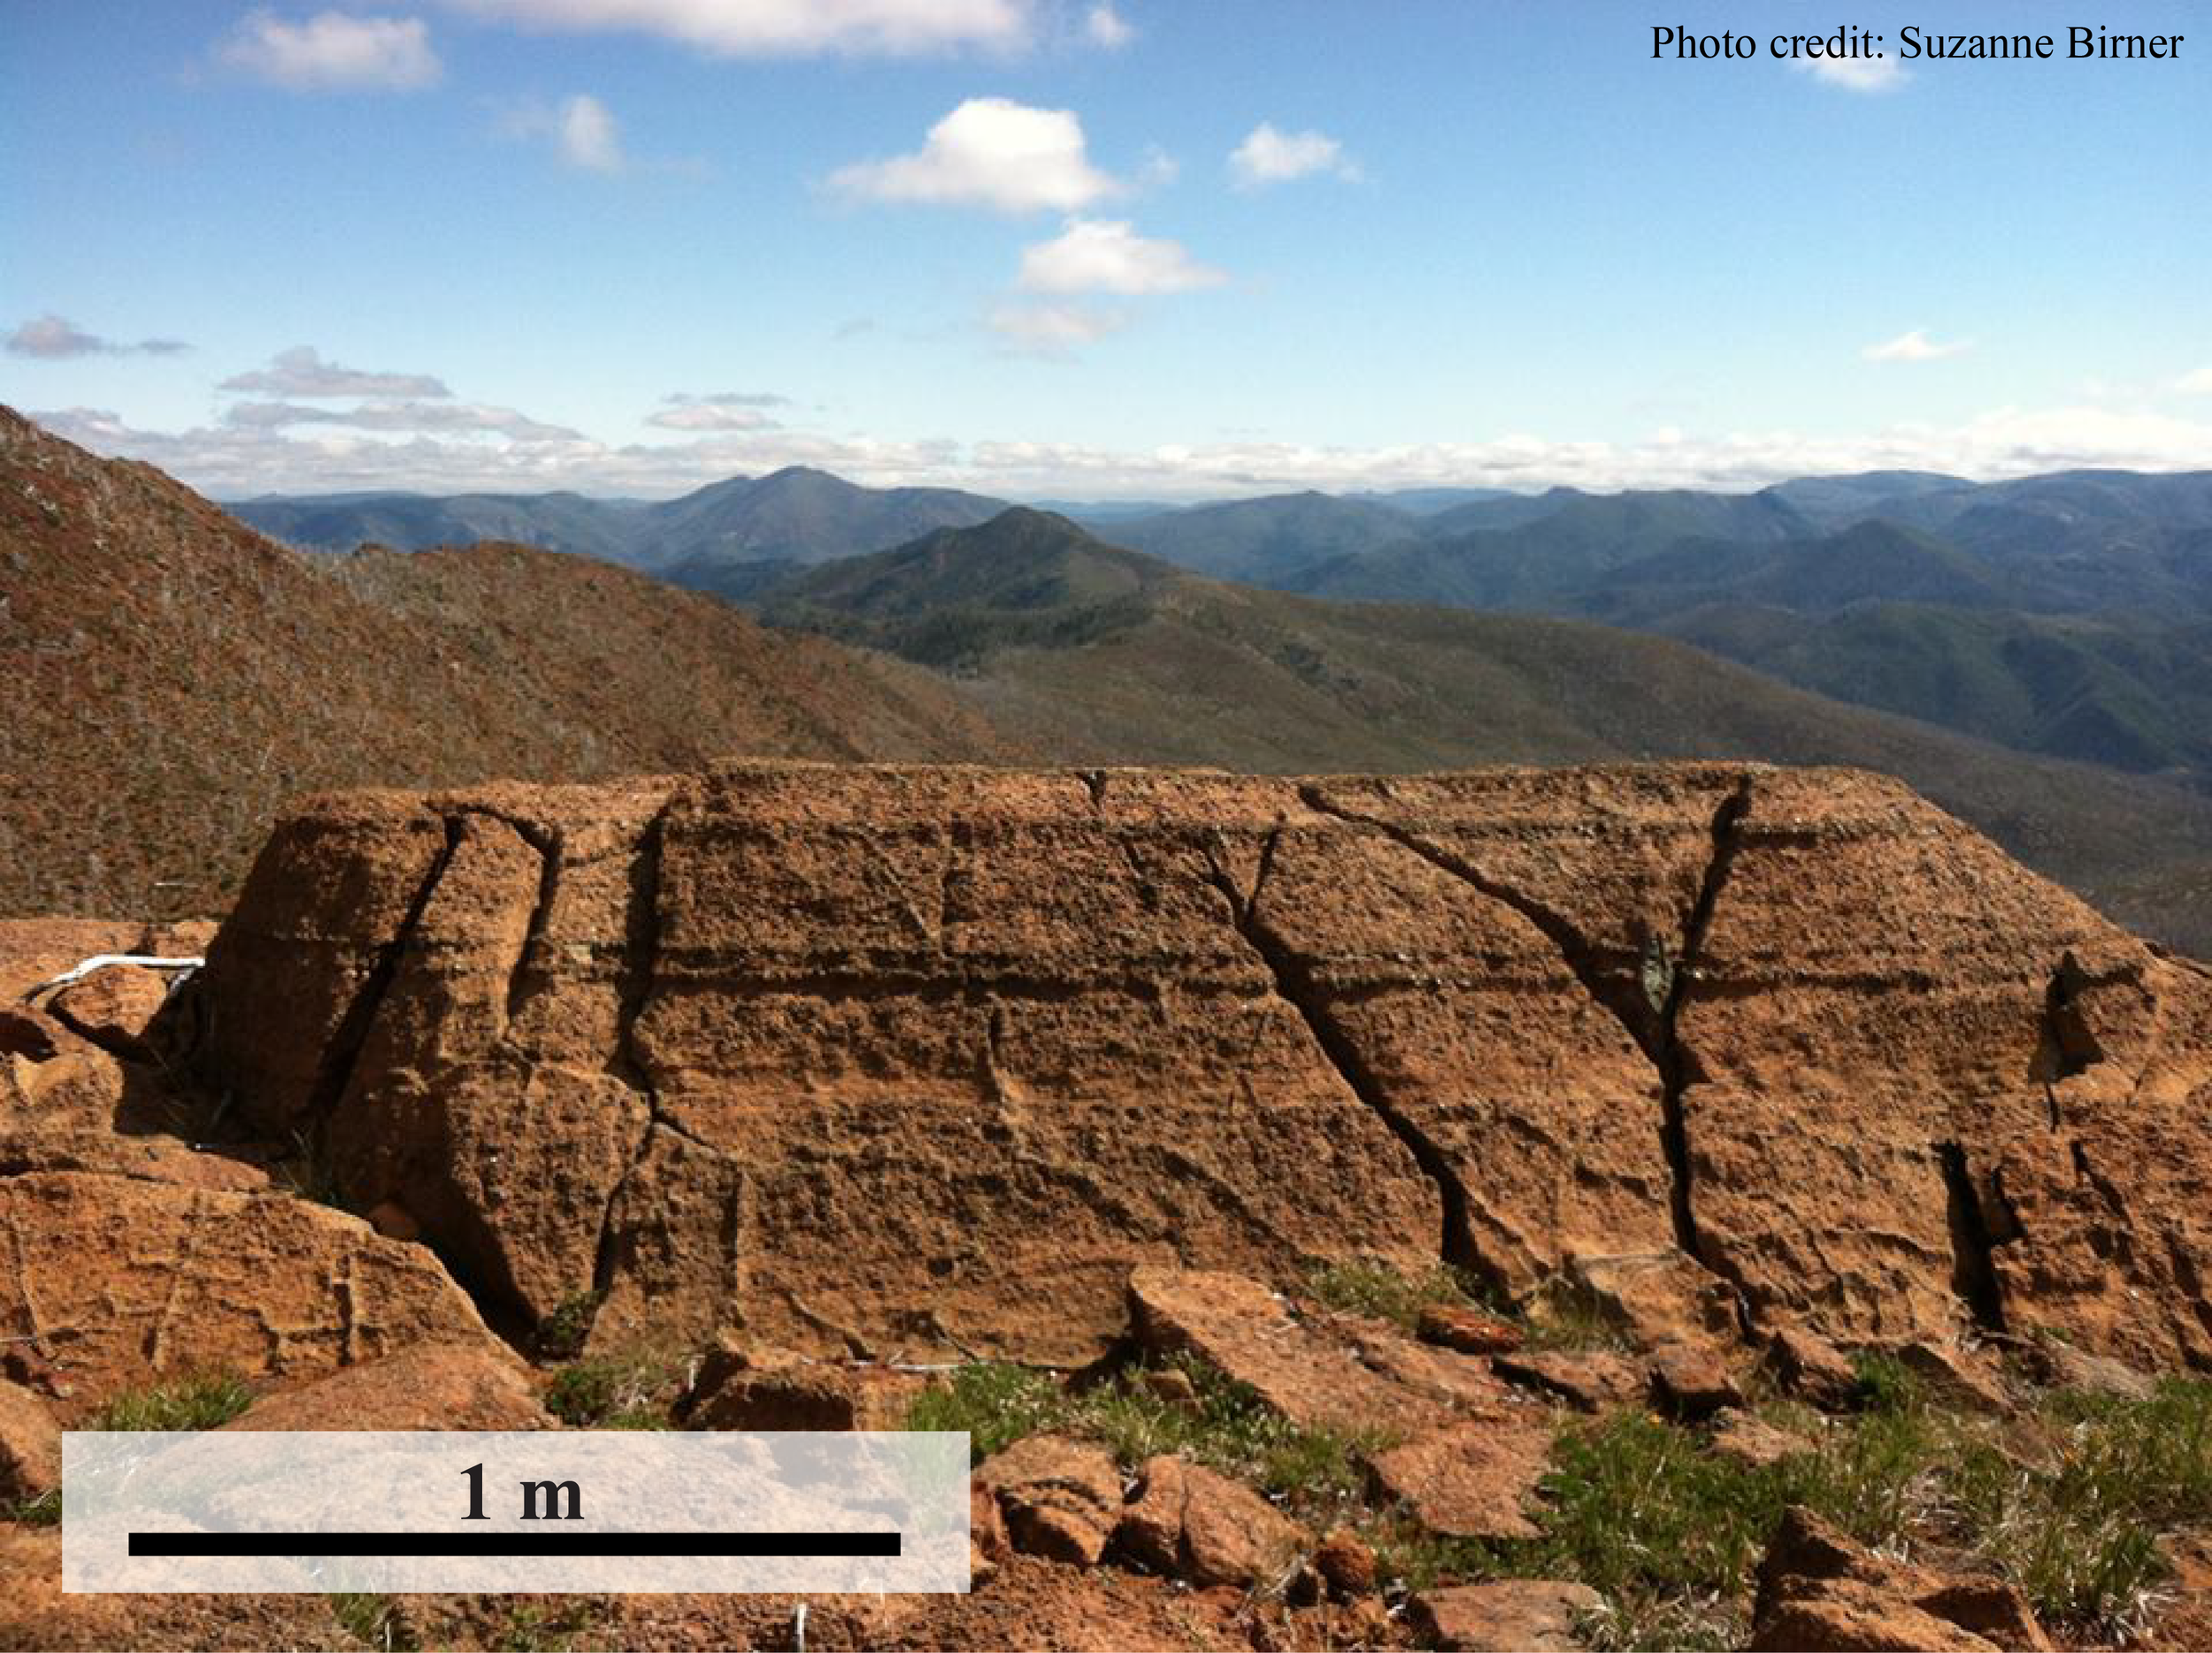 Mantle rocks in the Klamath Mountains! The horizontal pyroxene layering in this outcrop is common across the Fresno Bench area.